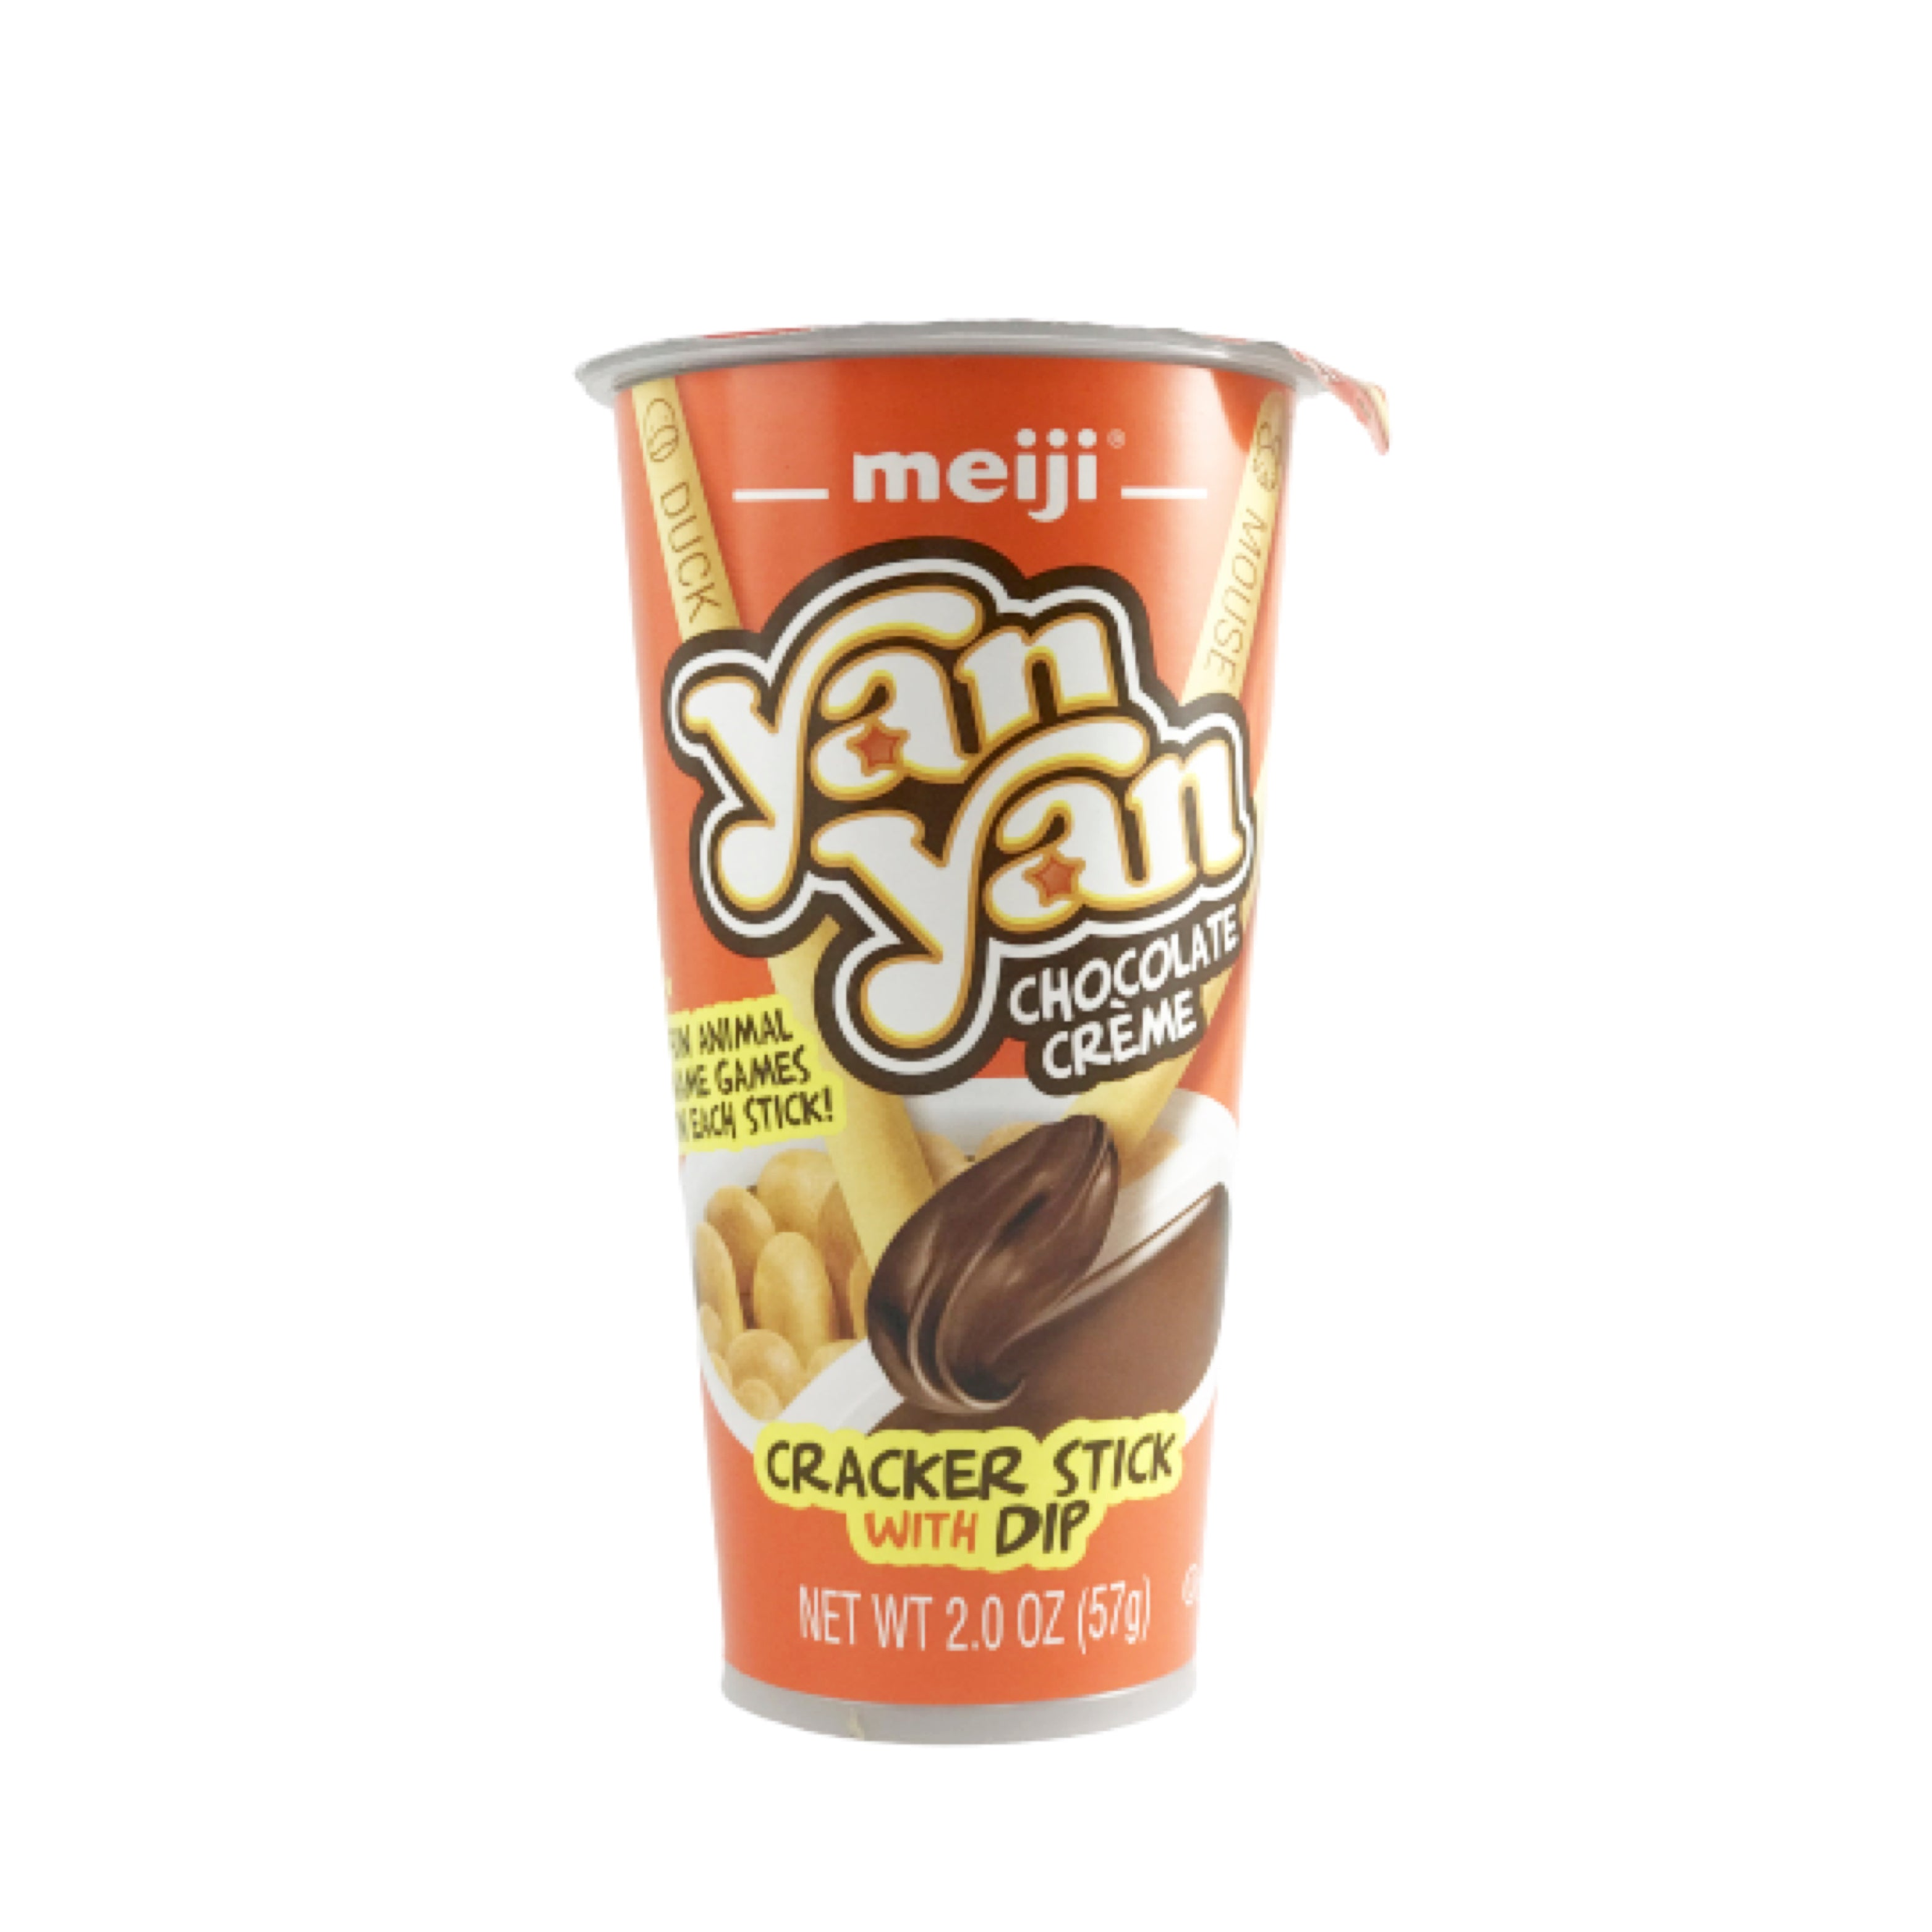 Meiji YanYan Chocolate Cream Cracker Stick